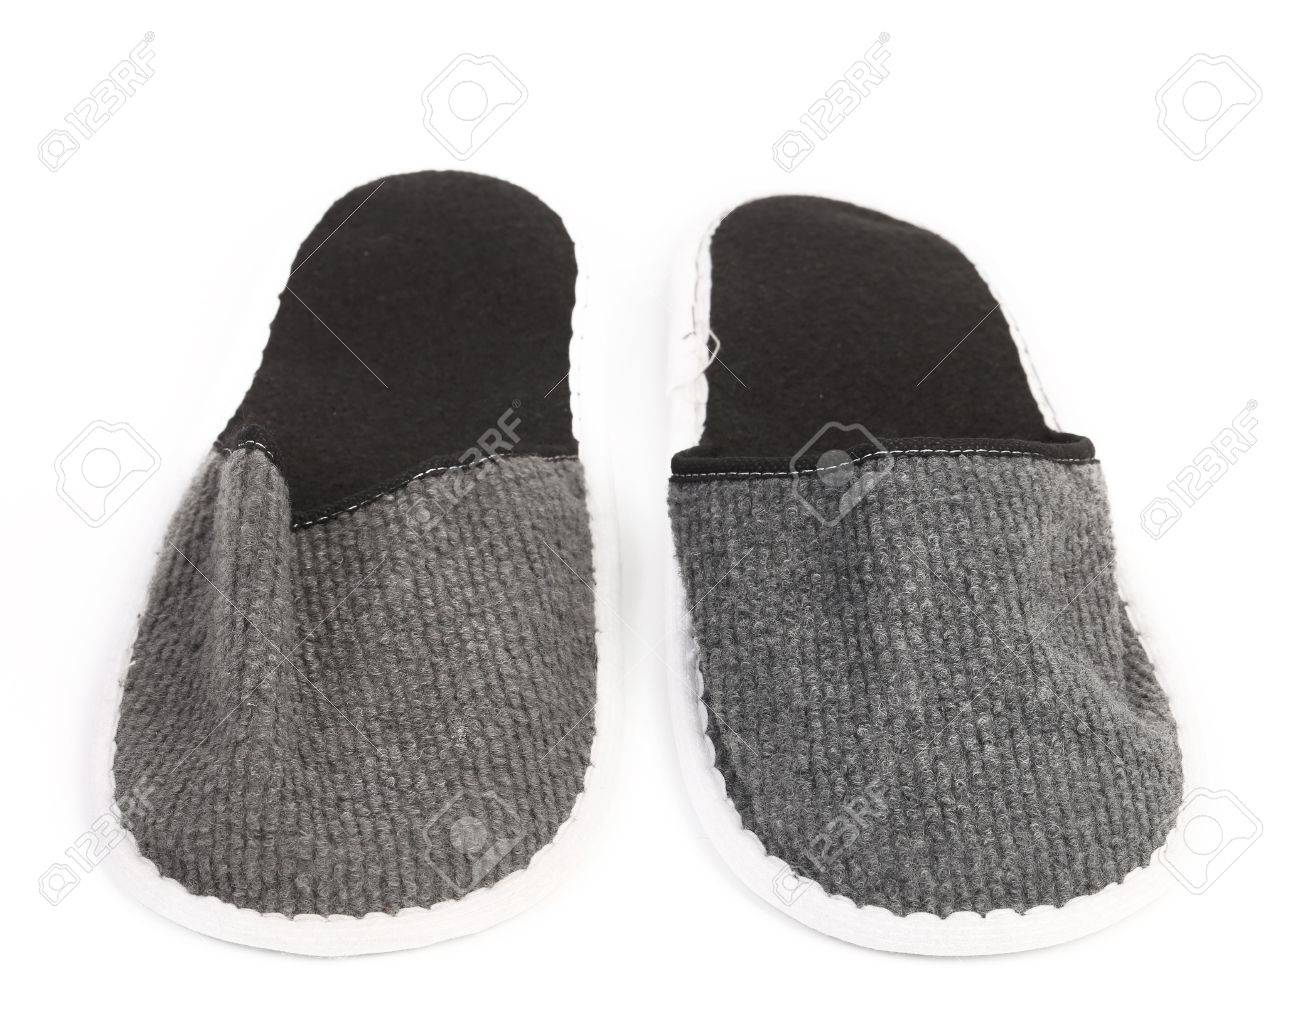 Pair of gray slippers on a white background. Close up. Stock Photo - 21866532